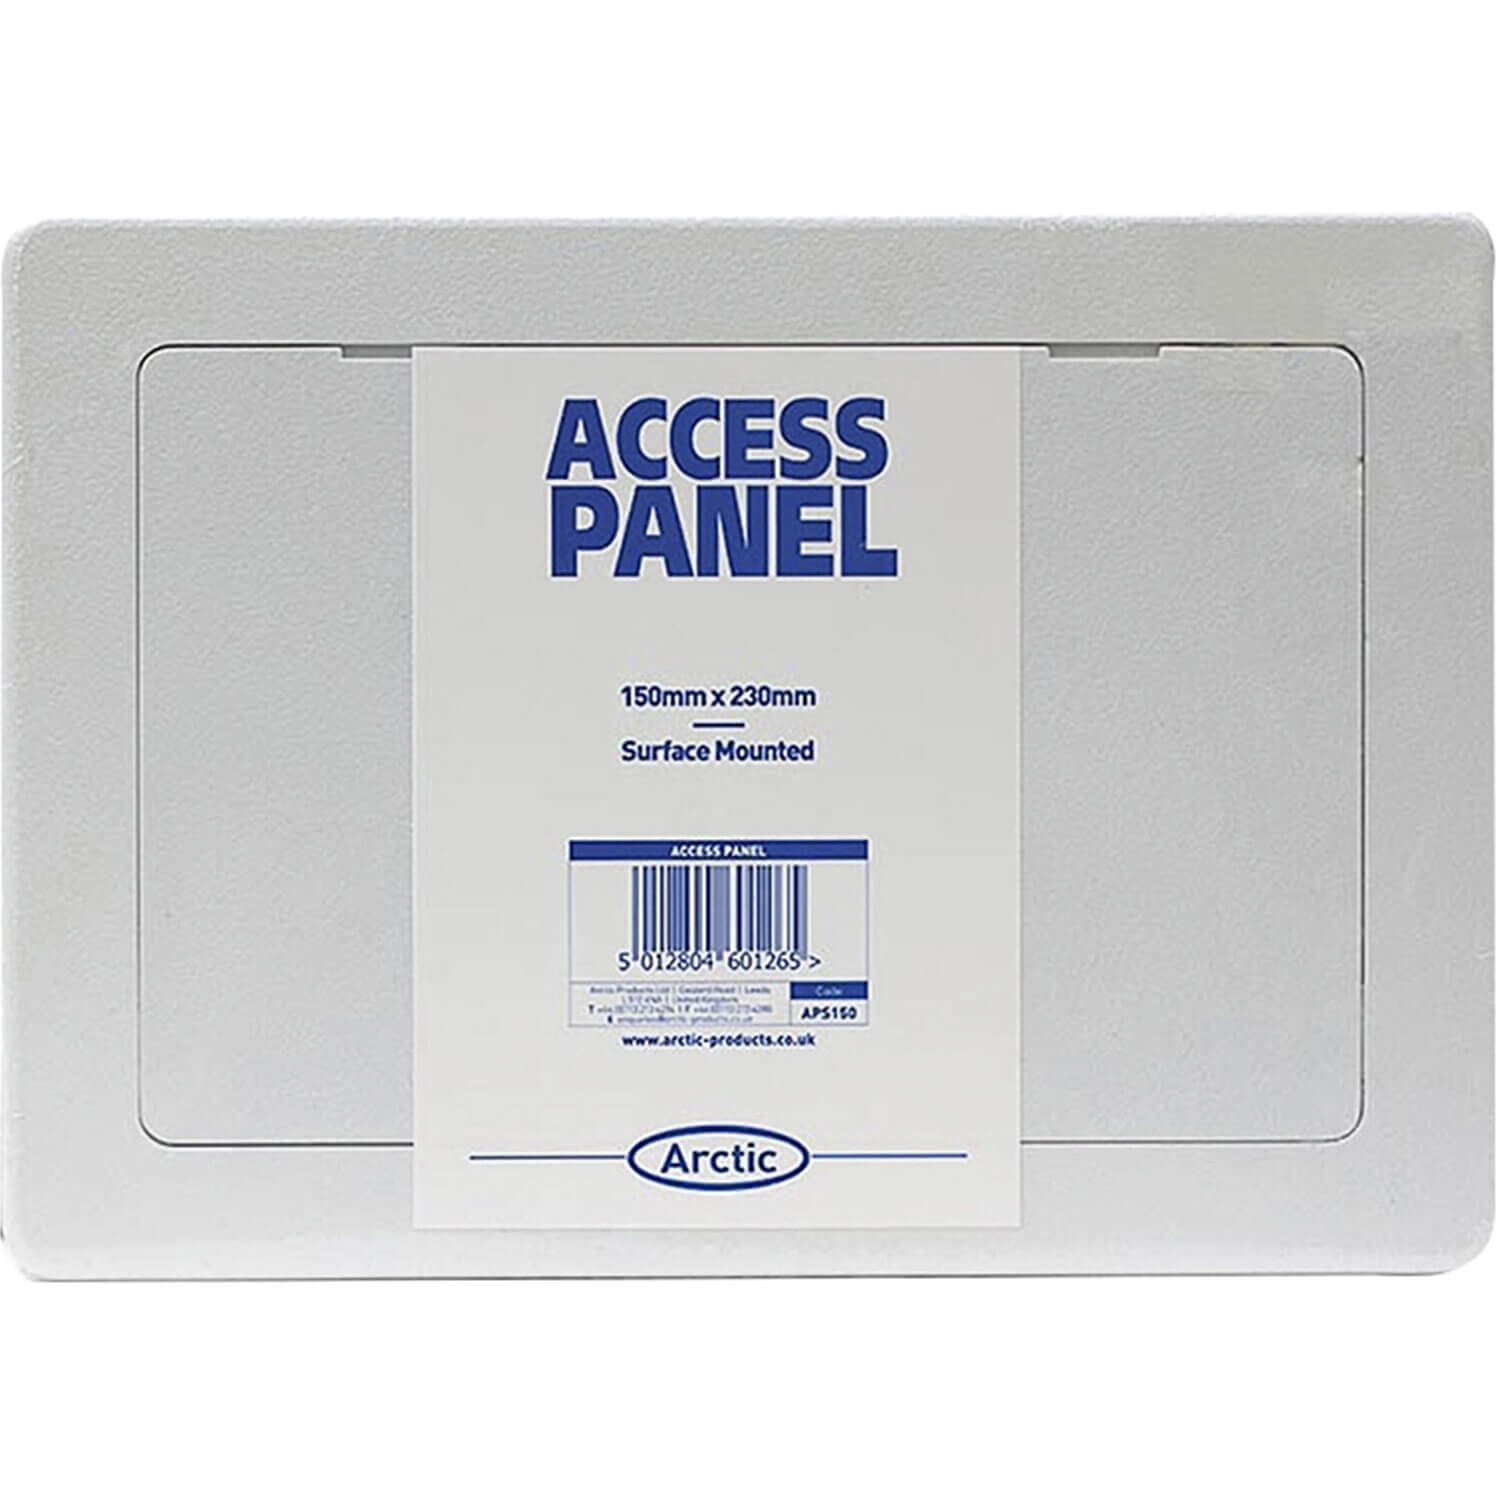 Image of Arctic Hayes Access Panel 150mm 230mm